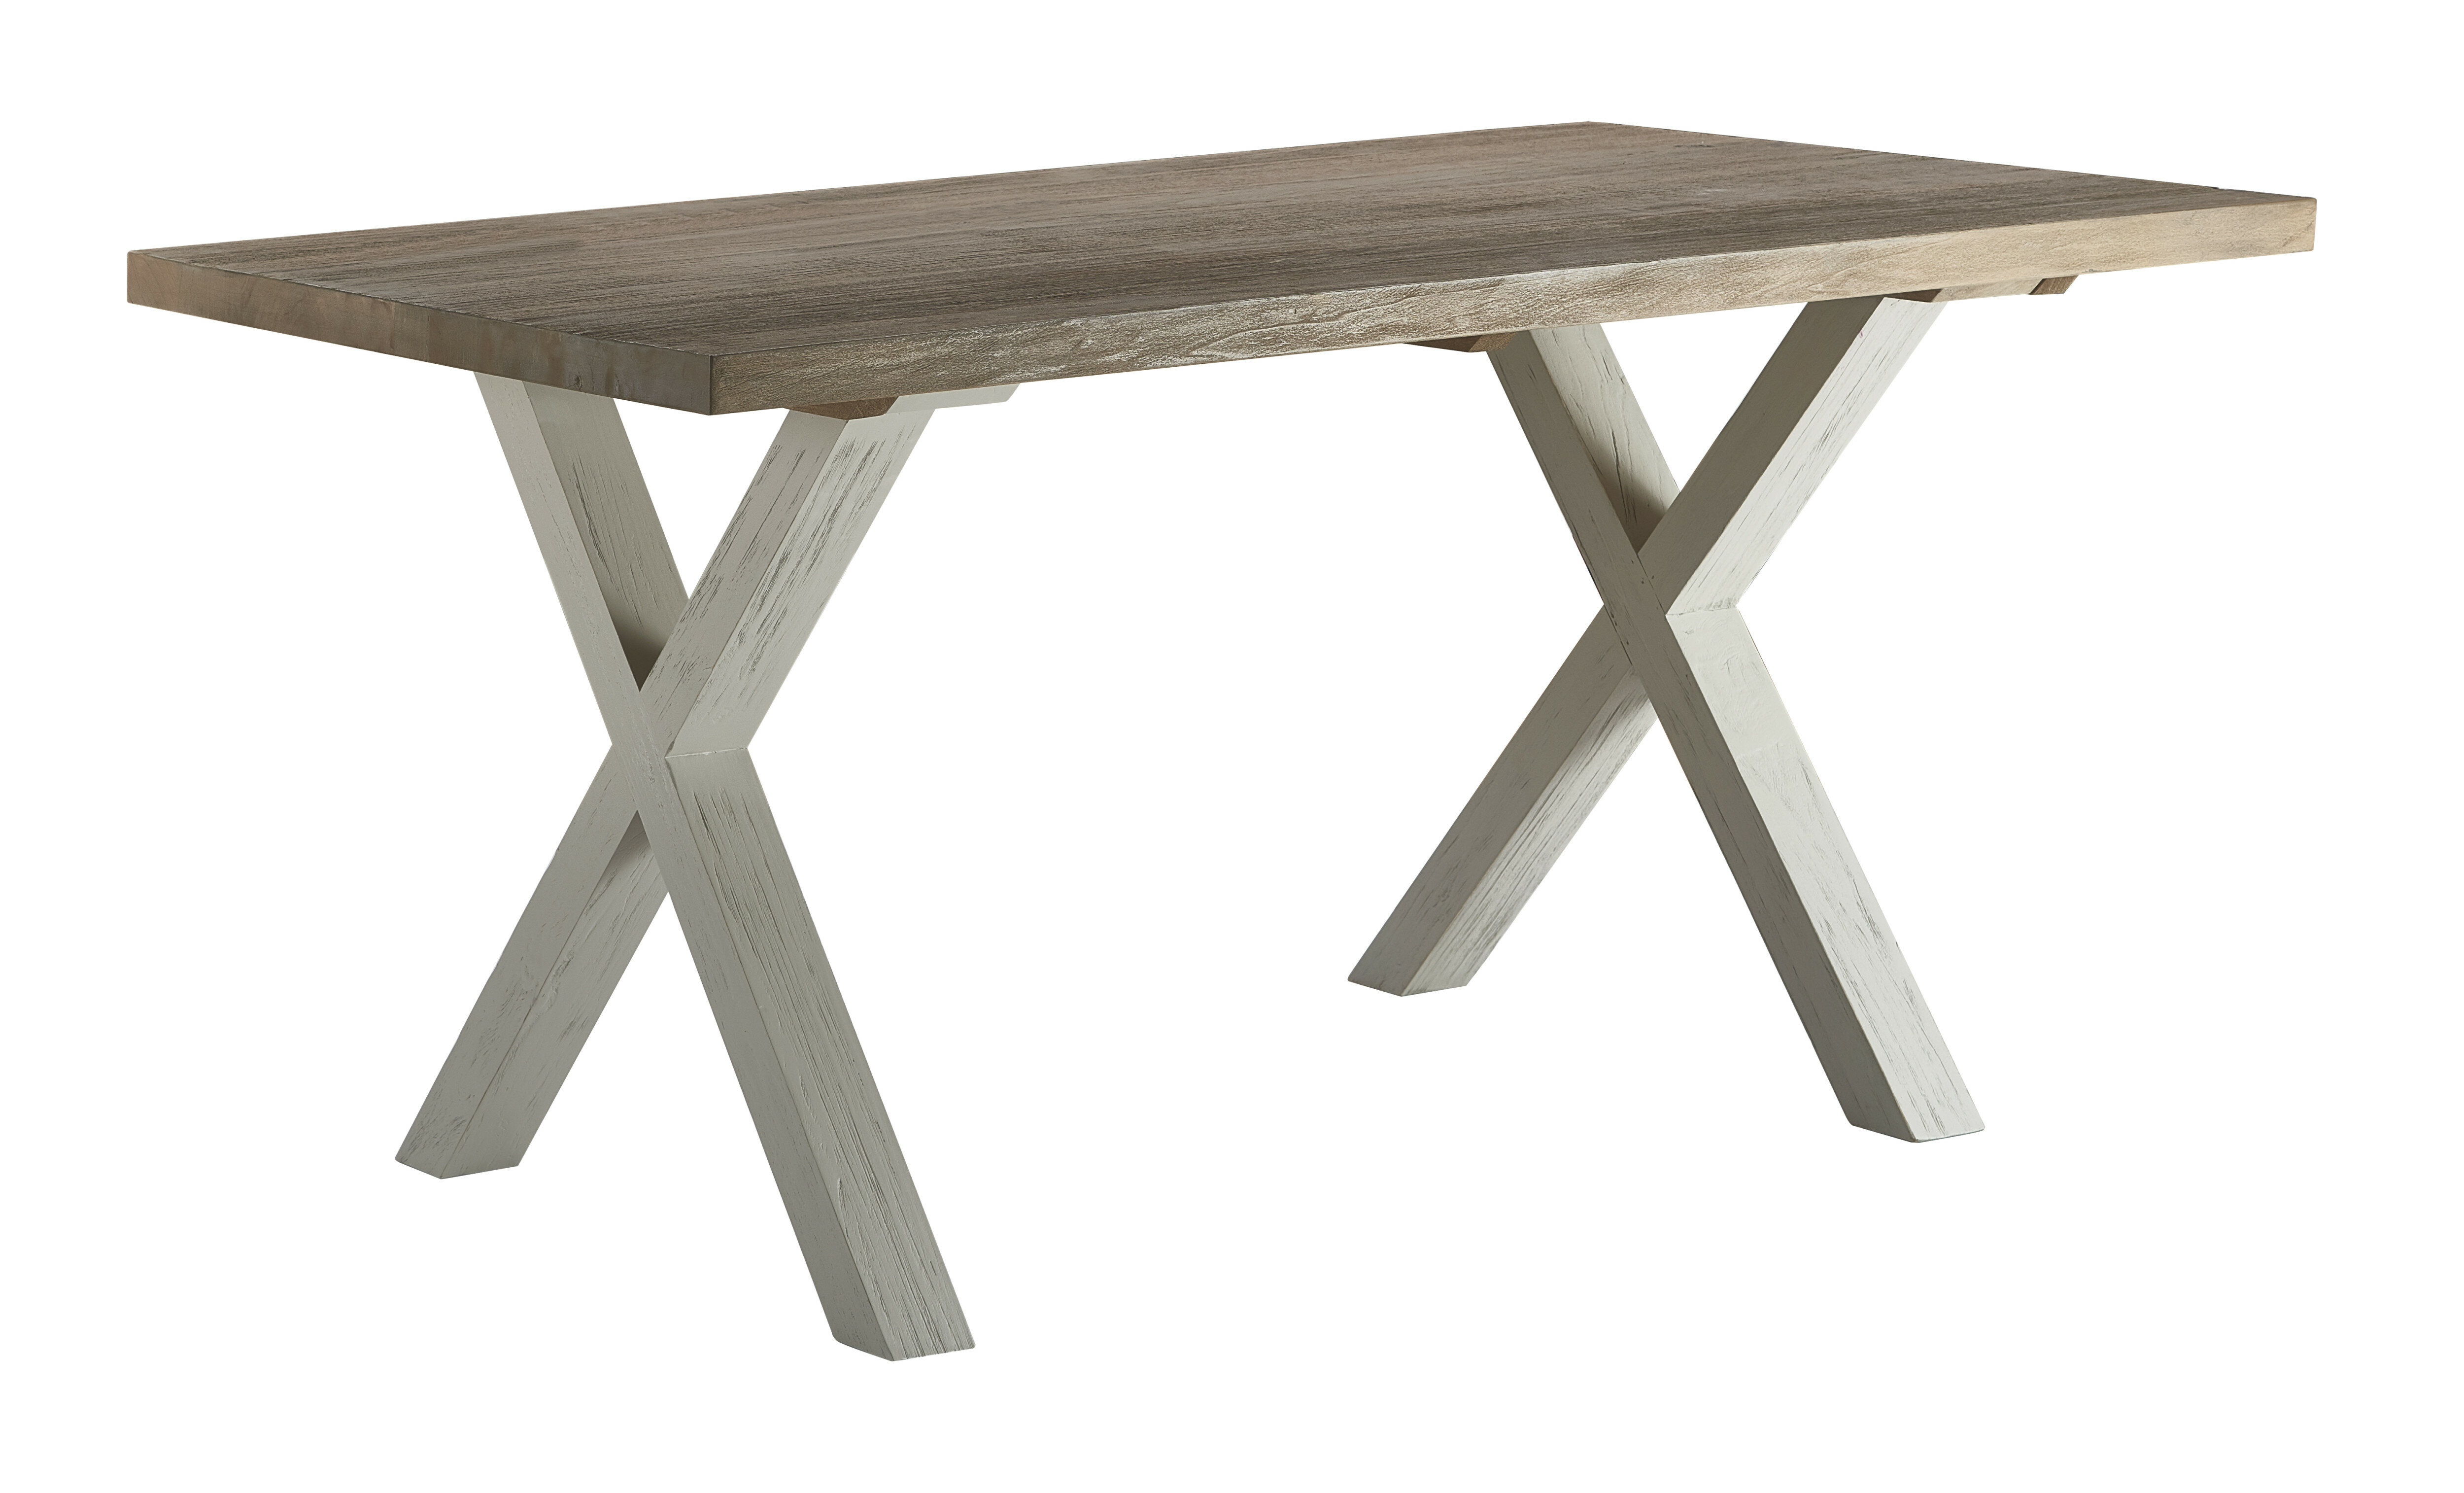 Marvelous Atchison Solid Wood Dining Table Beutiful Home Inspiration Truamahrainfo